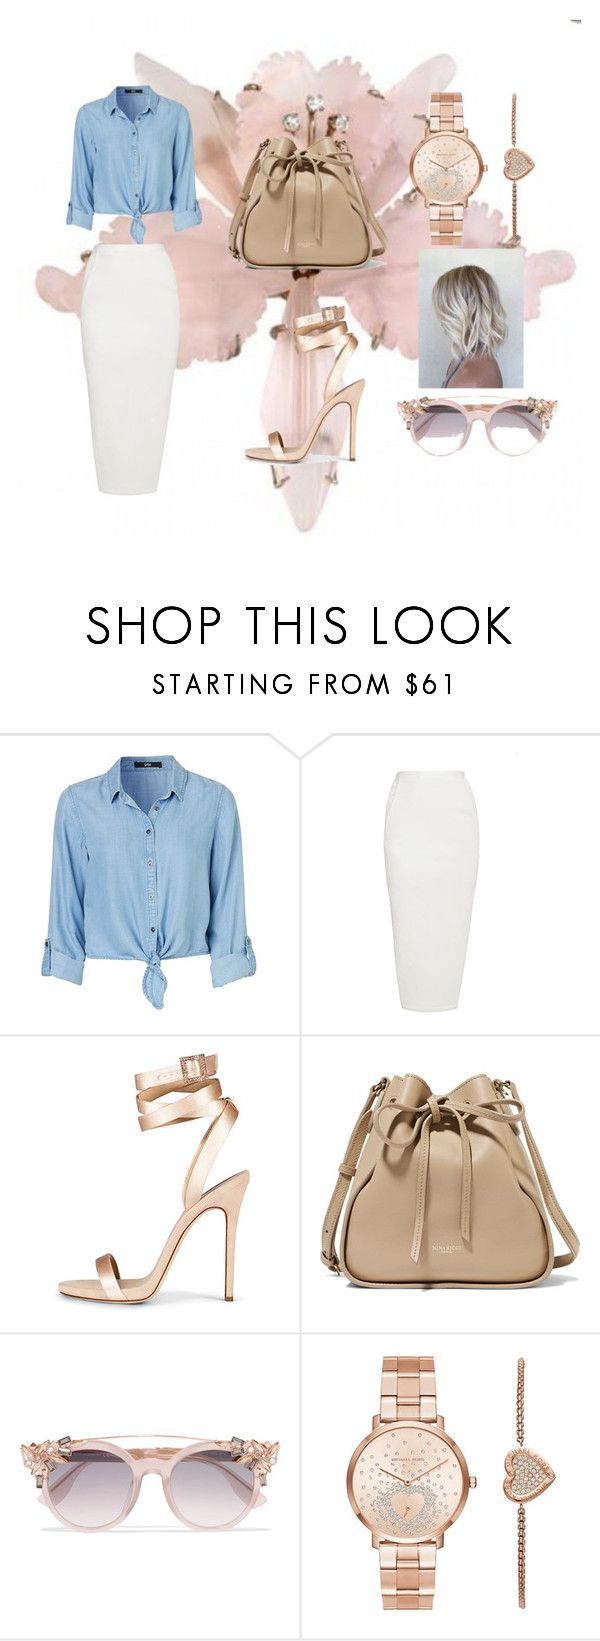 """""""Untitled #15"""" by lineocarol on Polyvore featuring Rick Owens, Nina Ricci, Jimmy Choo and Michael Kors"""